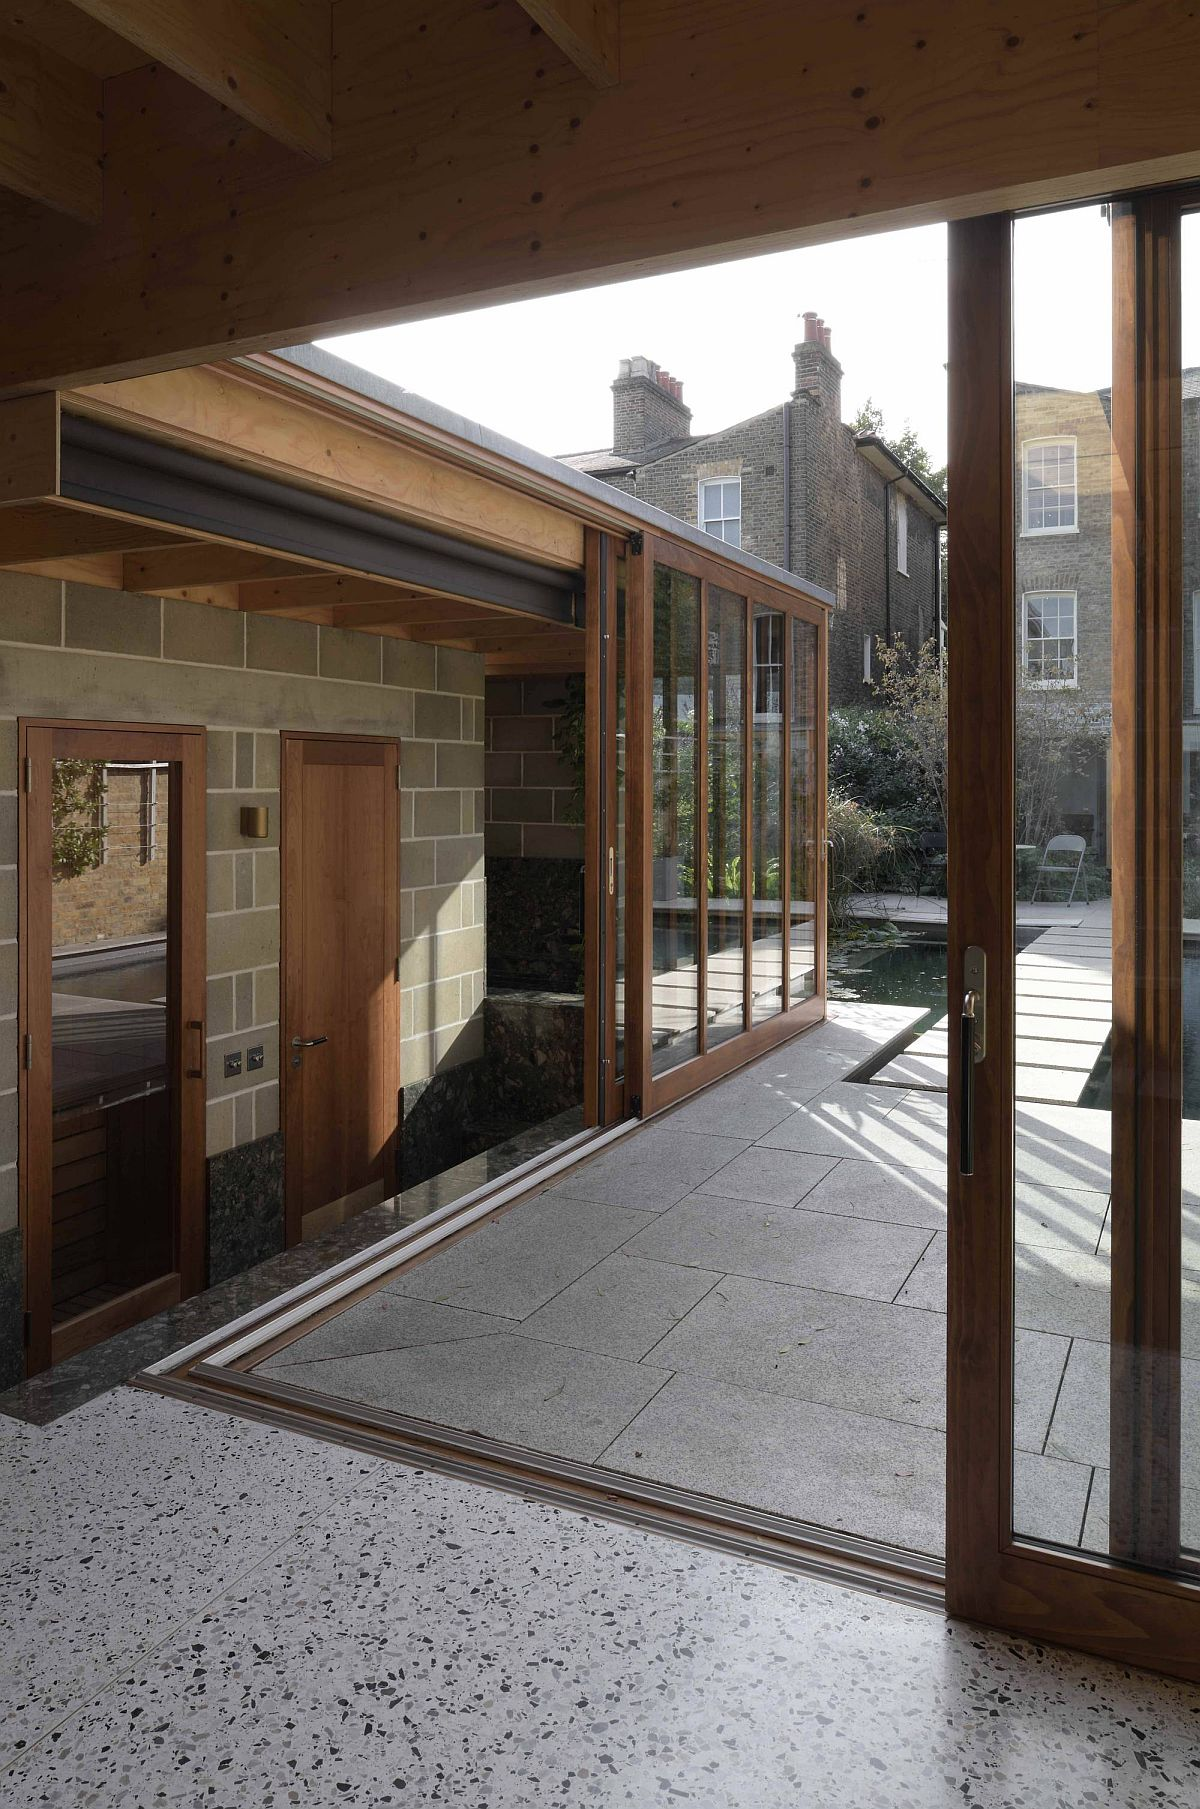 Space around the garden room flows into the landscape outside